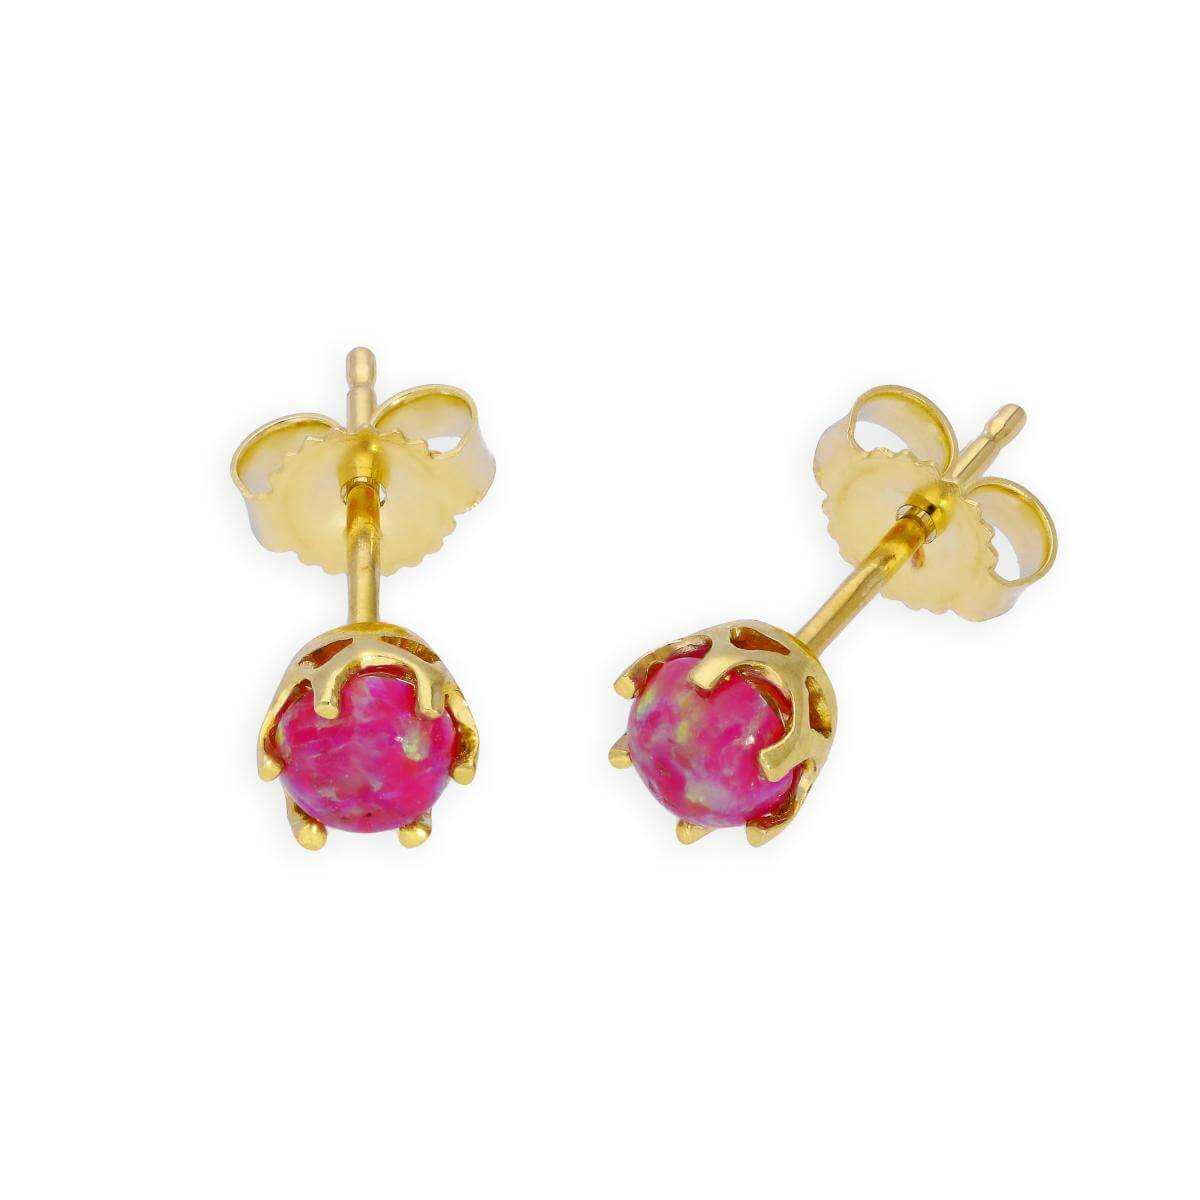 9ct Gold & Violet Opal Genuine Gemstone Stud Earrings